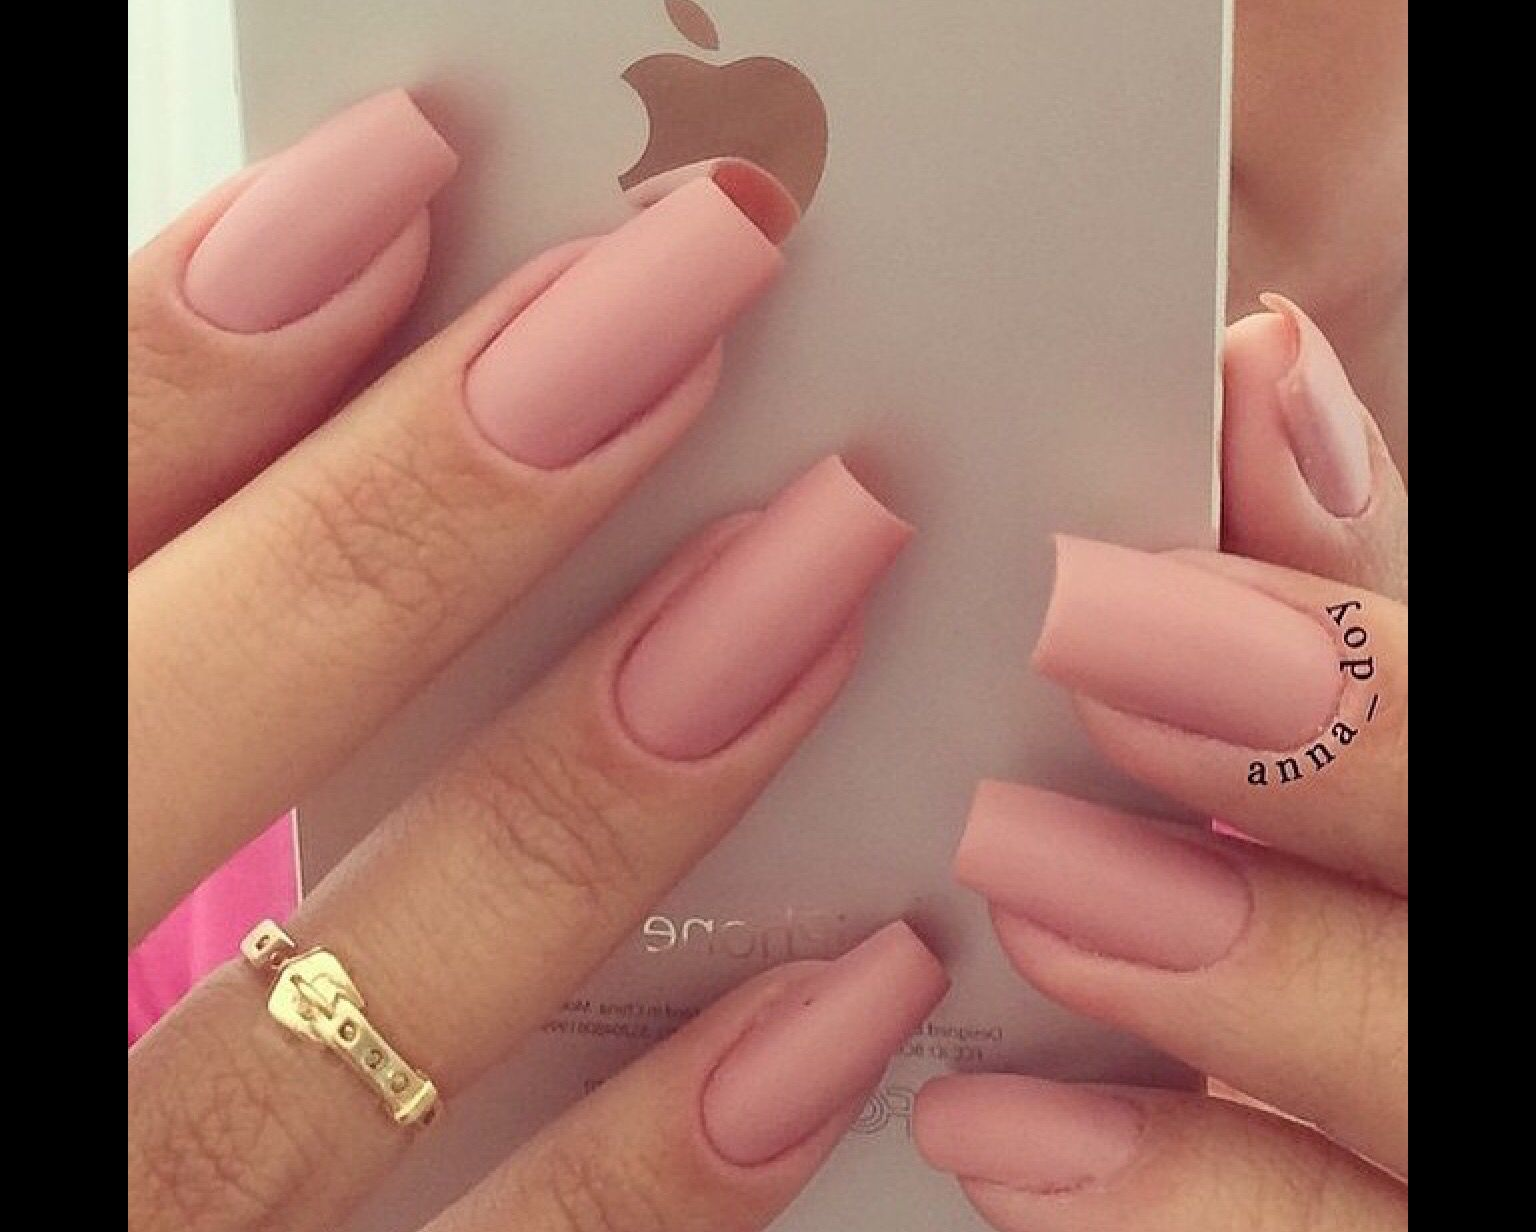 Pin by Karla on Nails | Pinterest | Nail nail, Makeup and Manicure